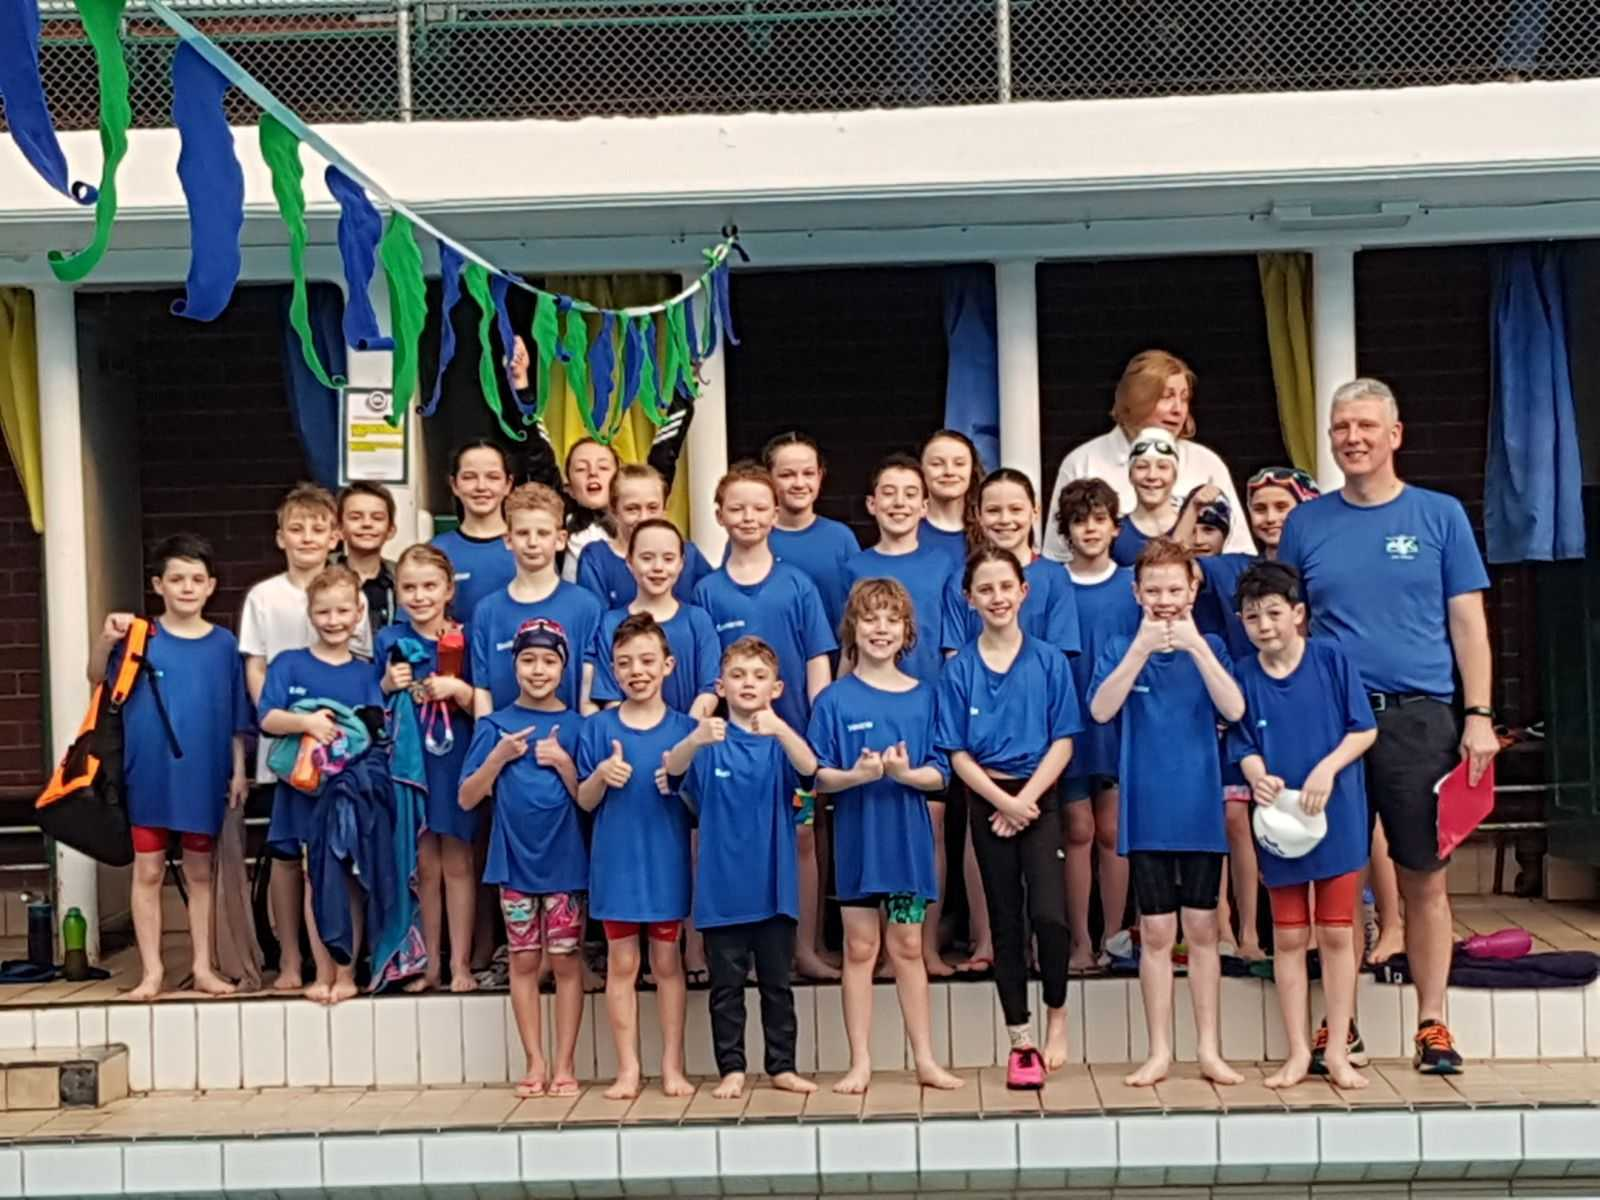 WINNING TEAM: NAASC Mini League team celebrate victory in round one at Renfrew